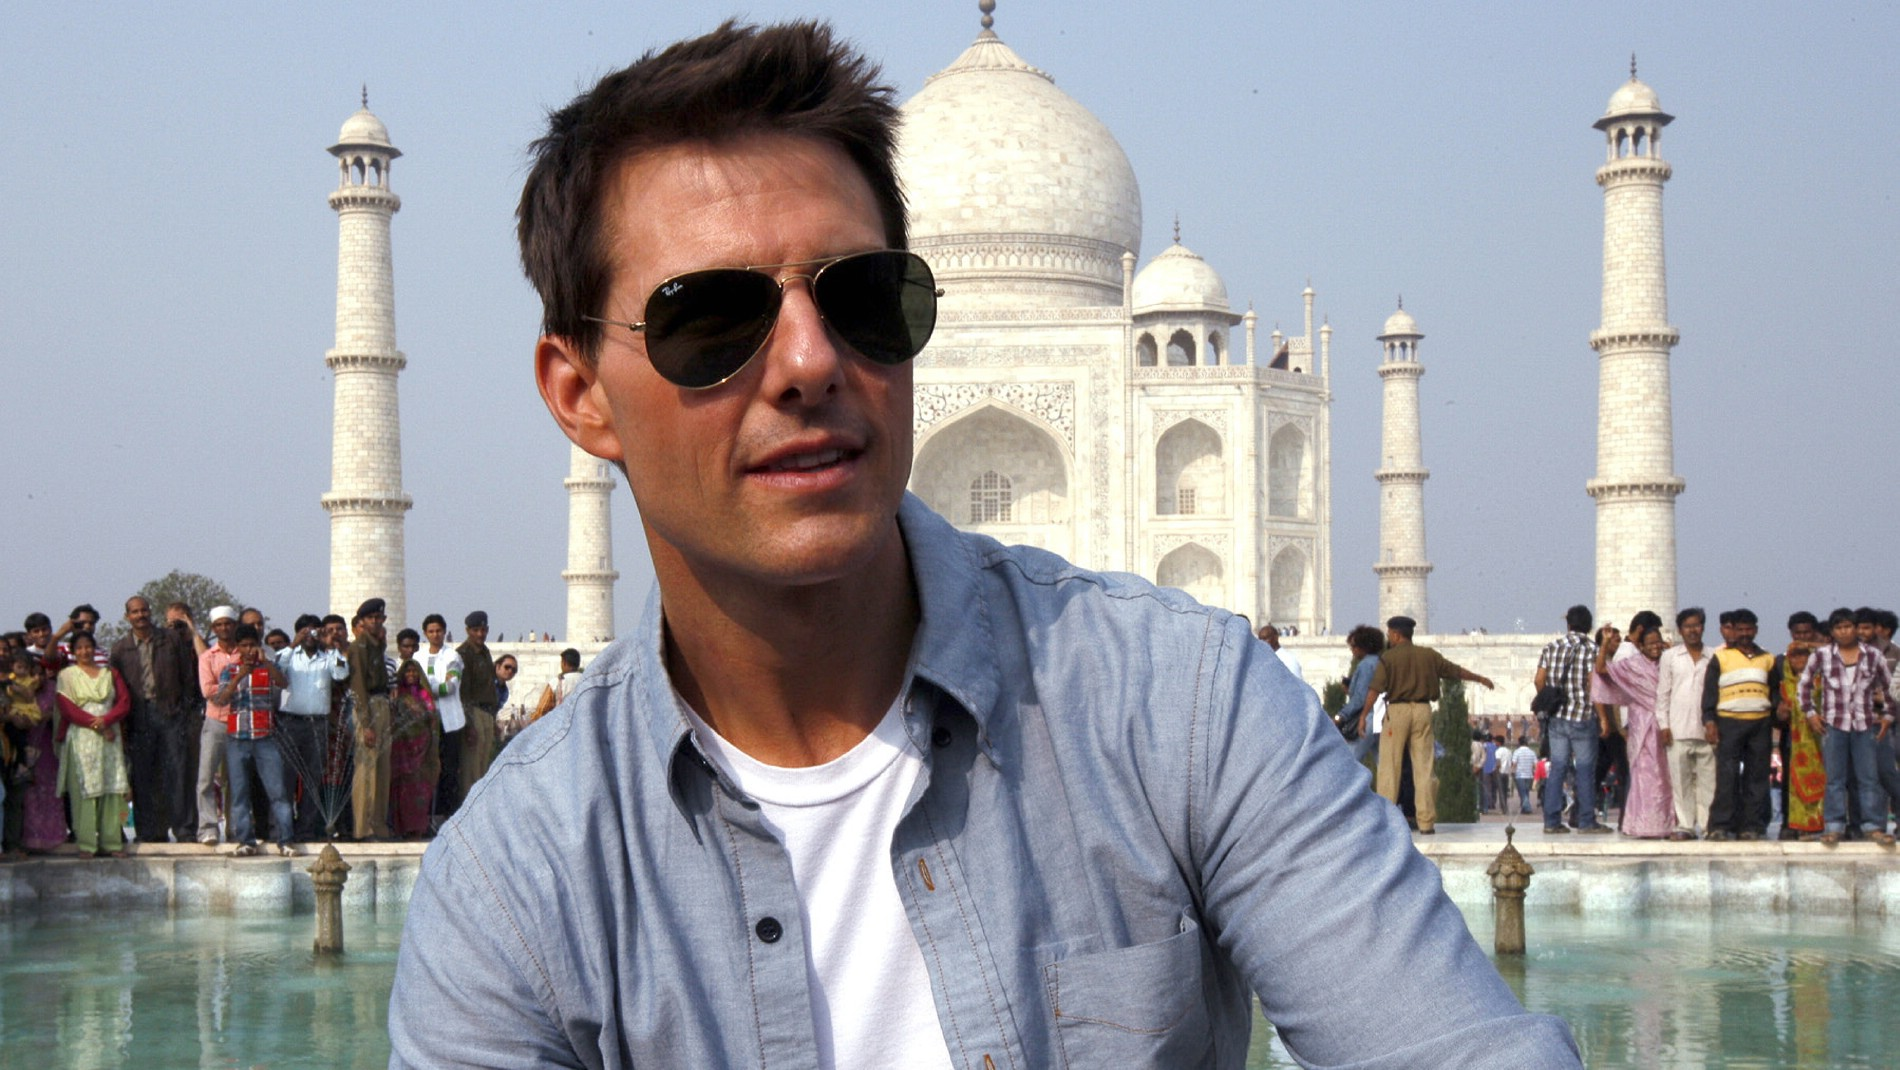 Tom Cruise Likely To Make Top Gun 2 Before Mission Impossible V